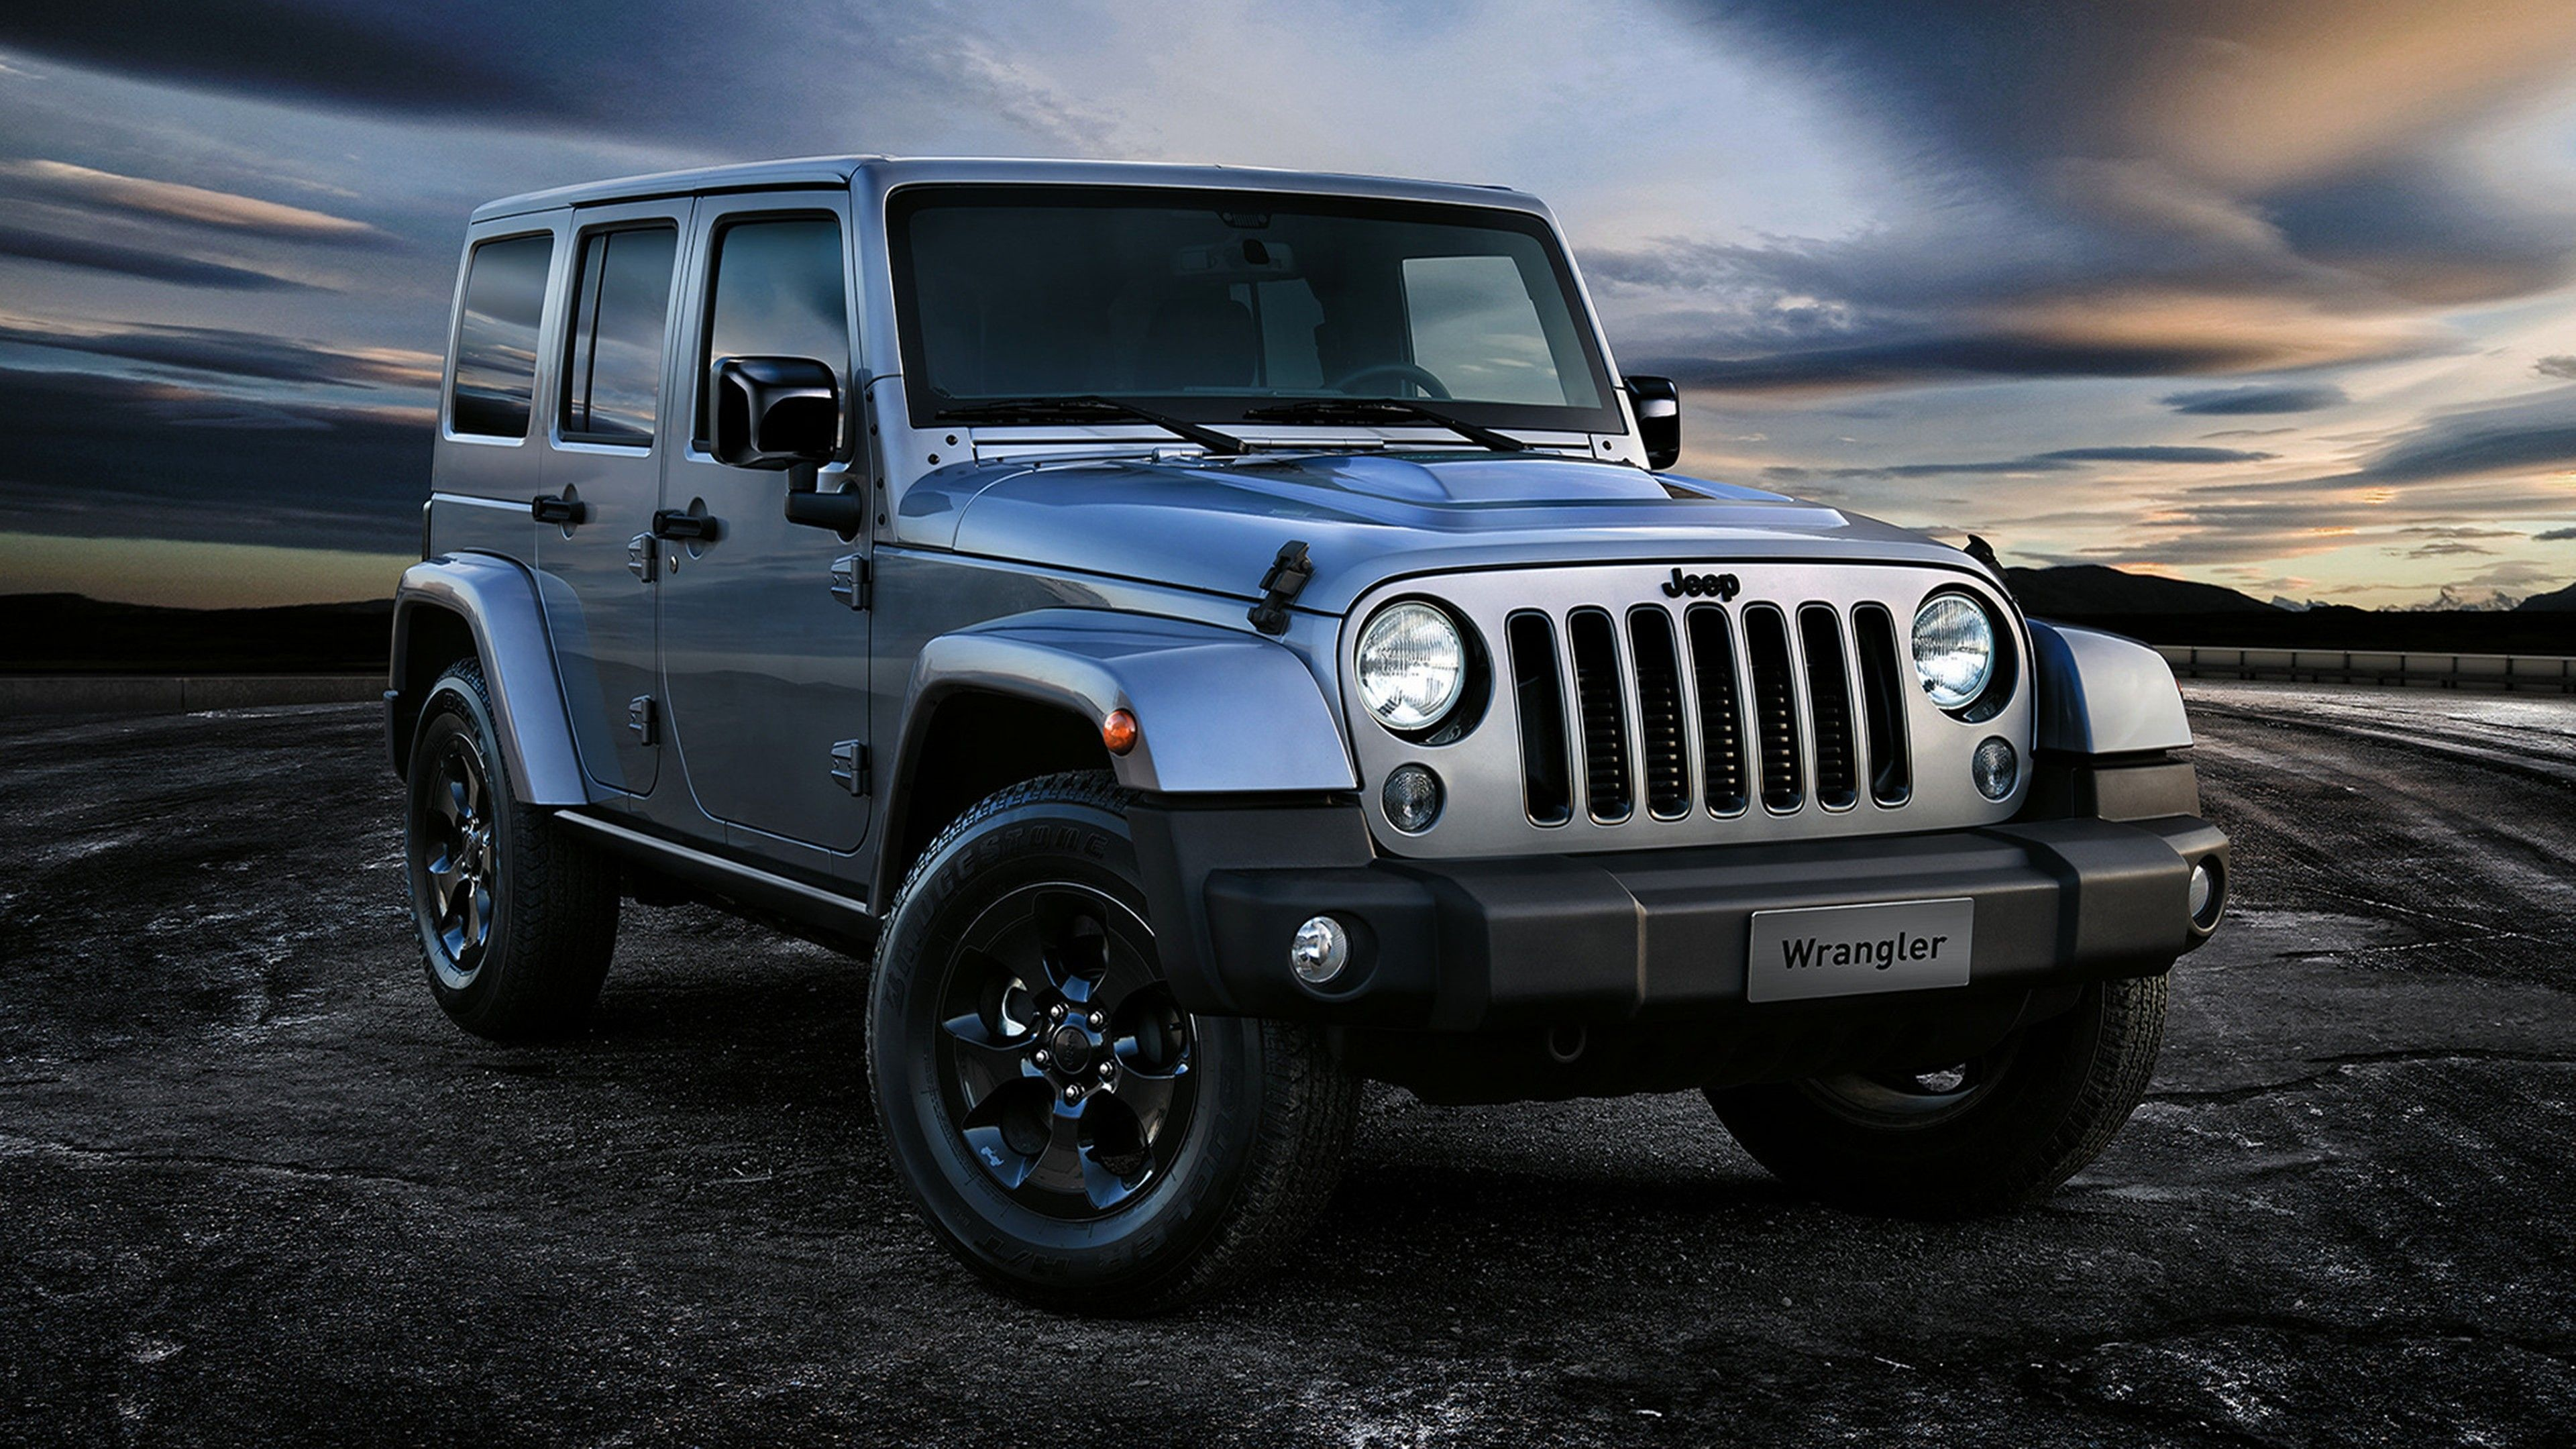 Image result for jeep wallpaper hd Wrangler car, Jeep